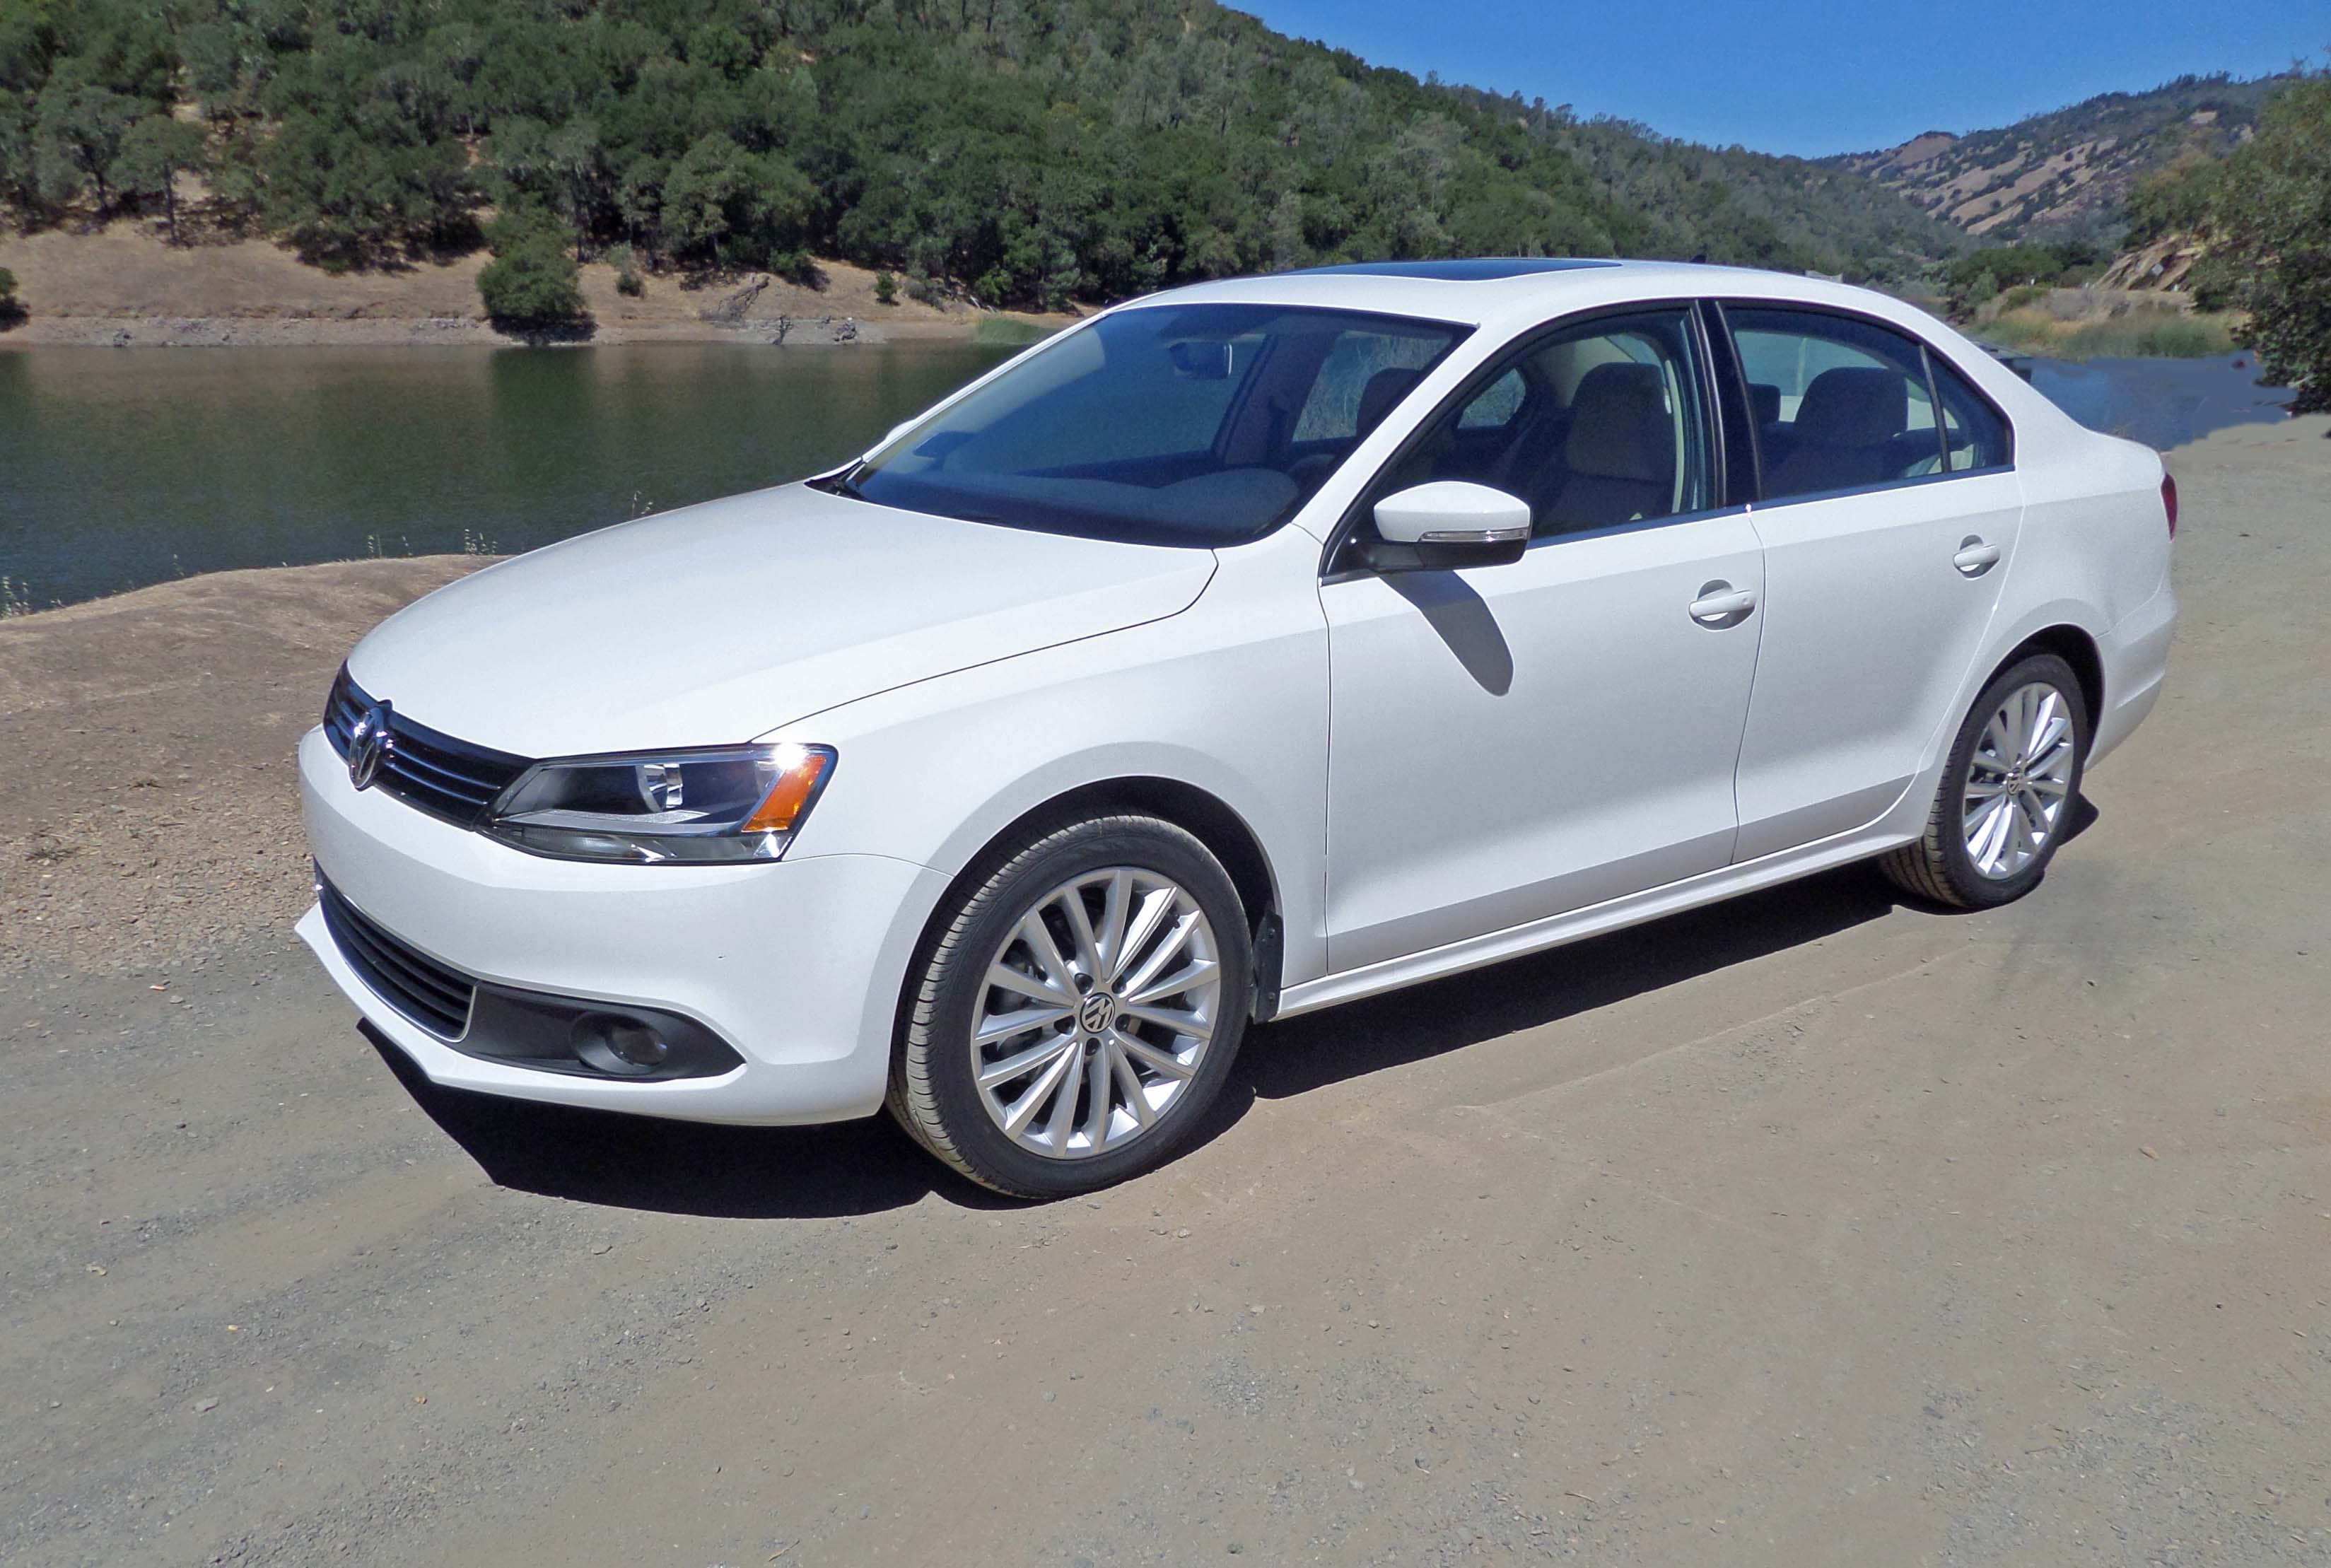 2014 volkswagen jetta sel test drive our auto expert. Black Bedroom Furniture Sets. Home Design Ideas